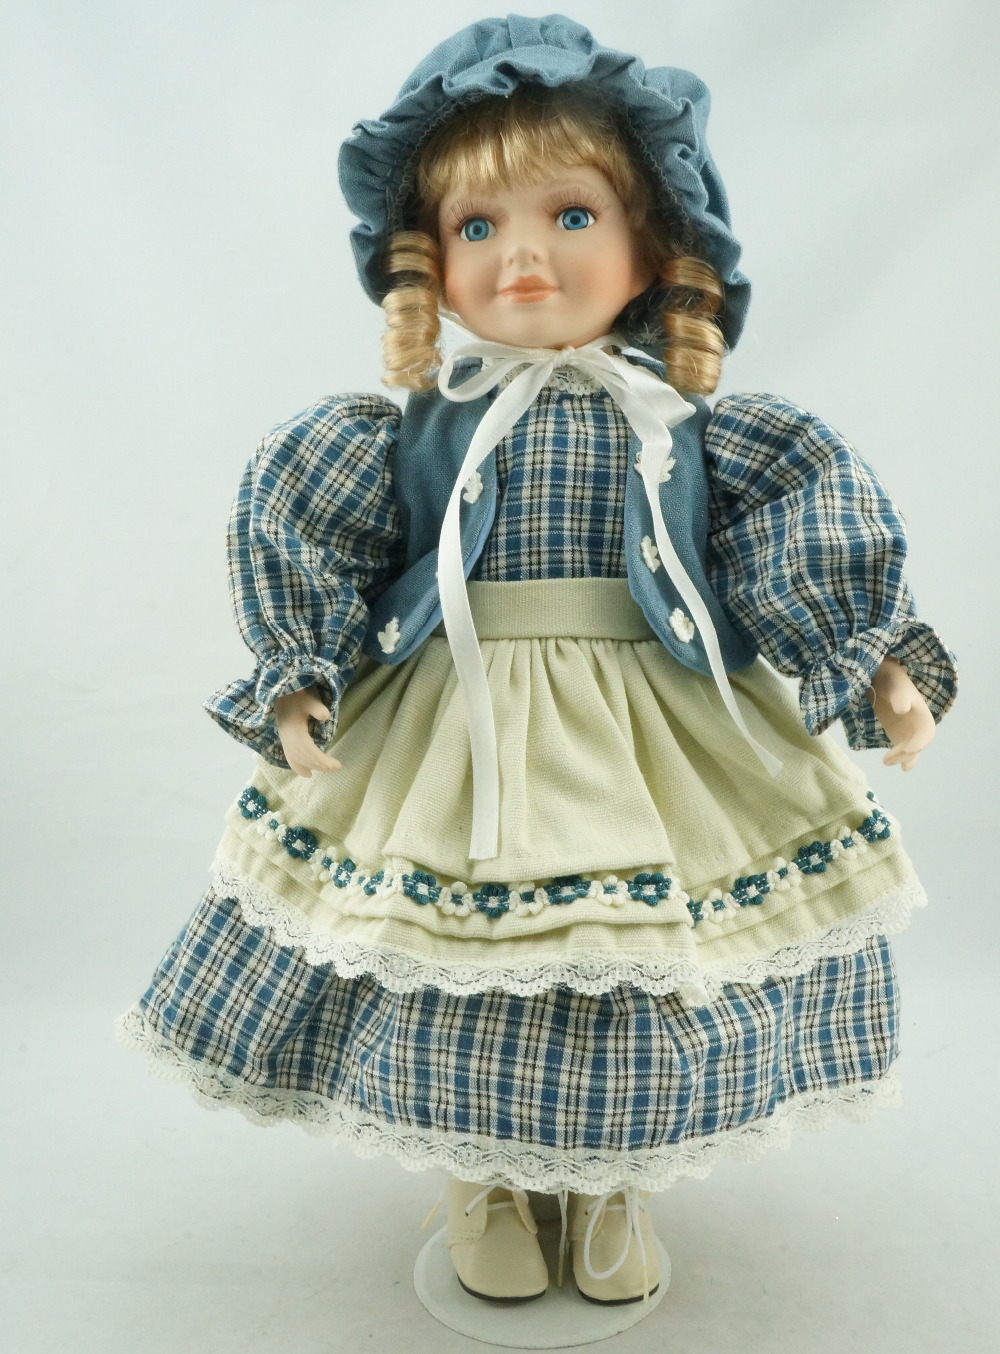 Cosette 16 Inches New Handmade Grids Collect Blue Dress